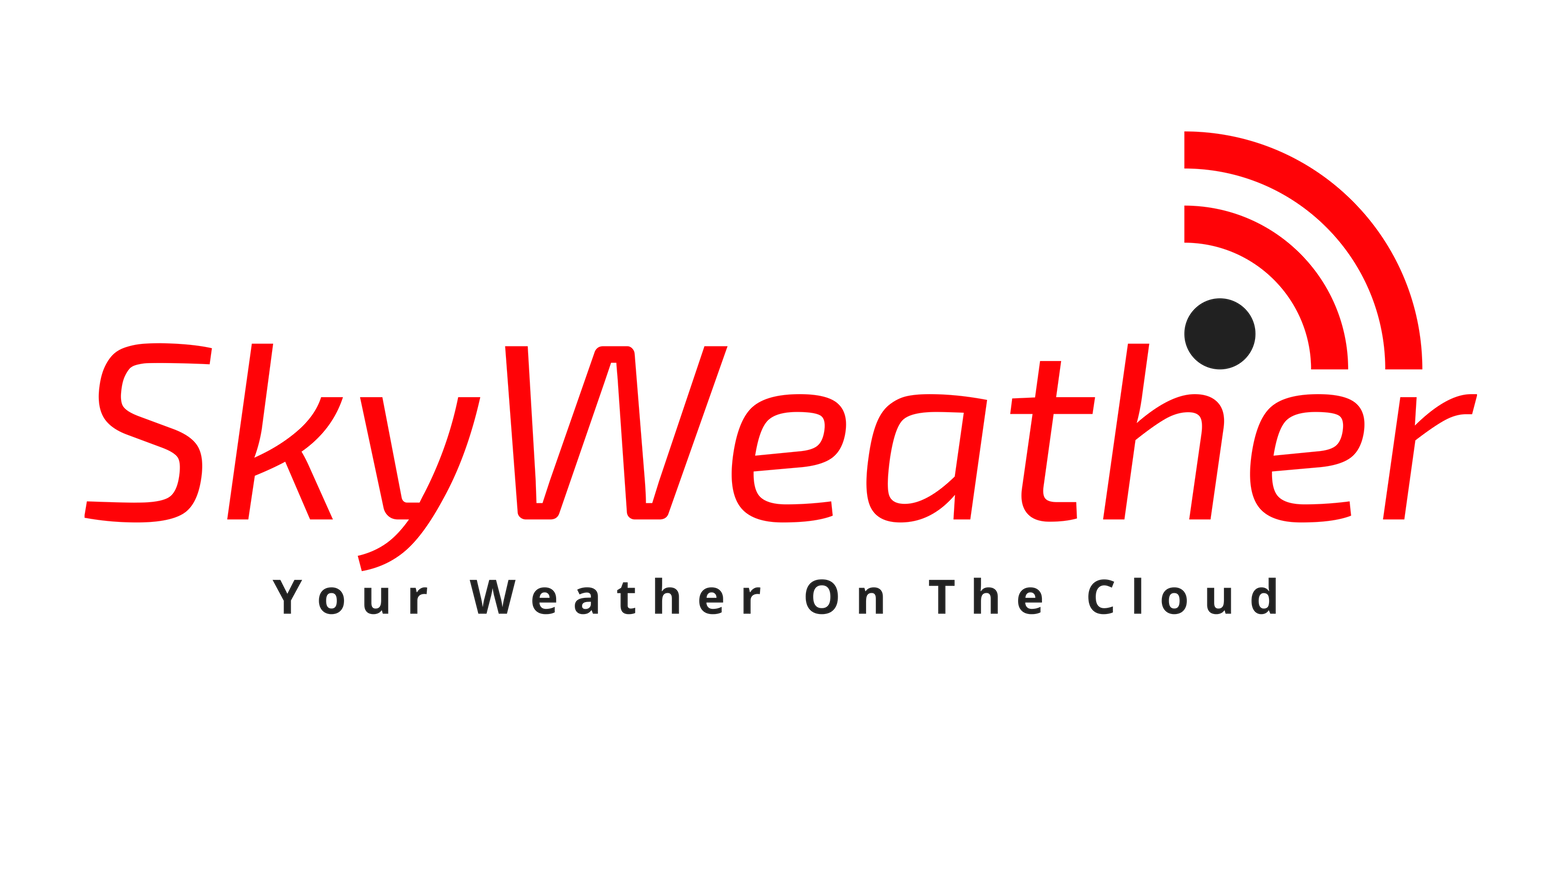 SkyWeather - A Raspberry Pi based easy to put together (no soldering!)  Weather Station.   All documentation updates are on https://shop.switchdoc.com/products/skyweather-raspberry-pi-based-weather-station-kit-for-the-cloud